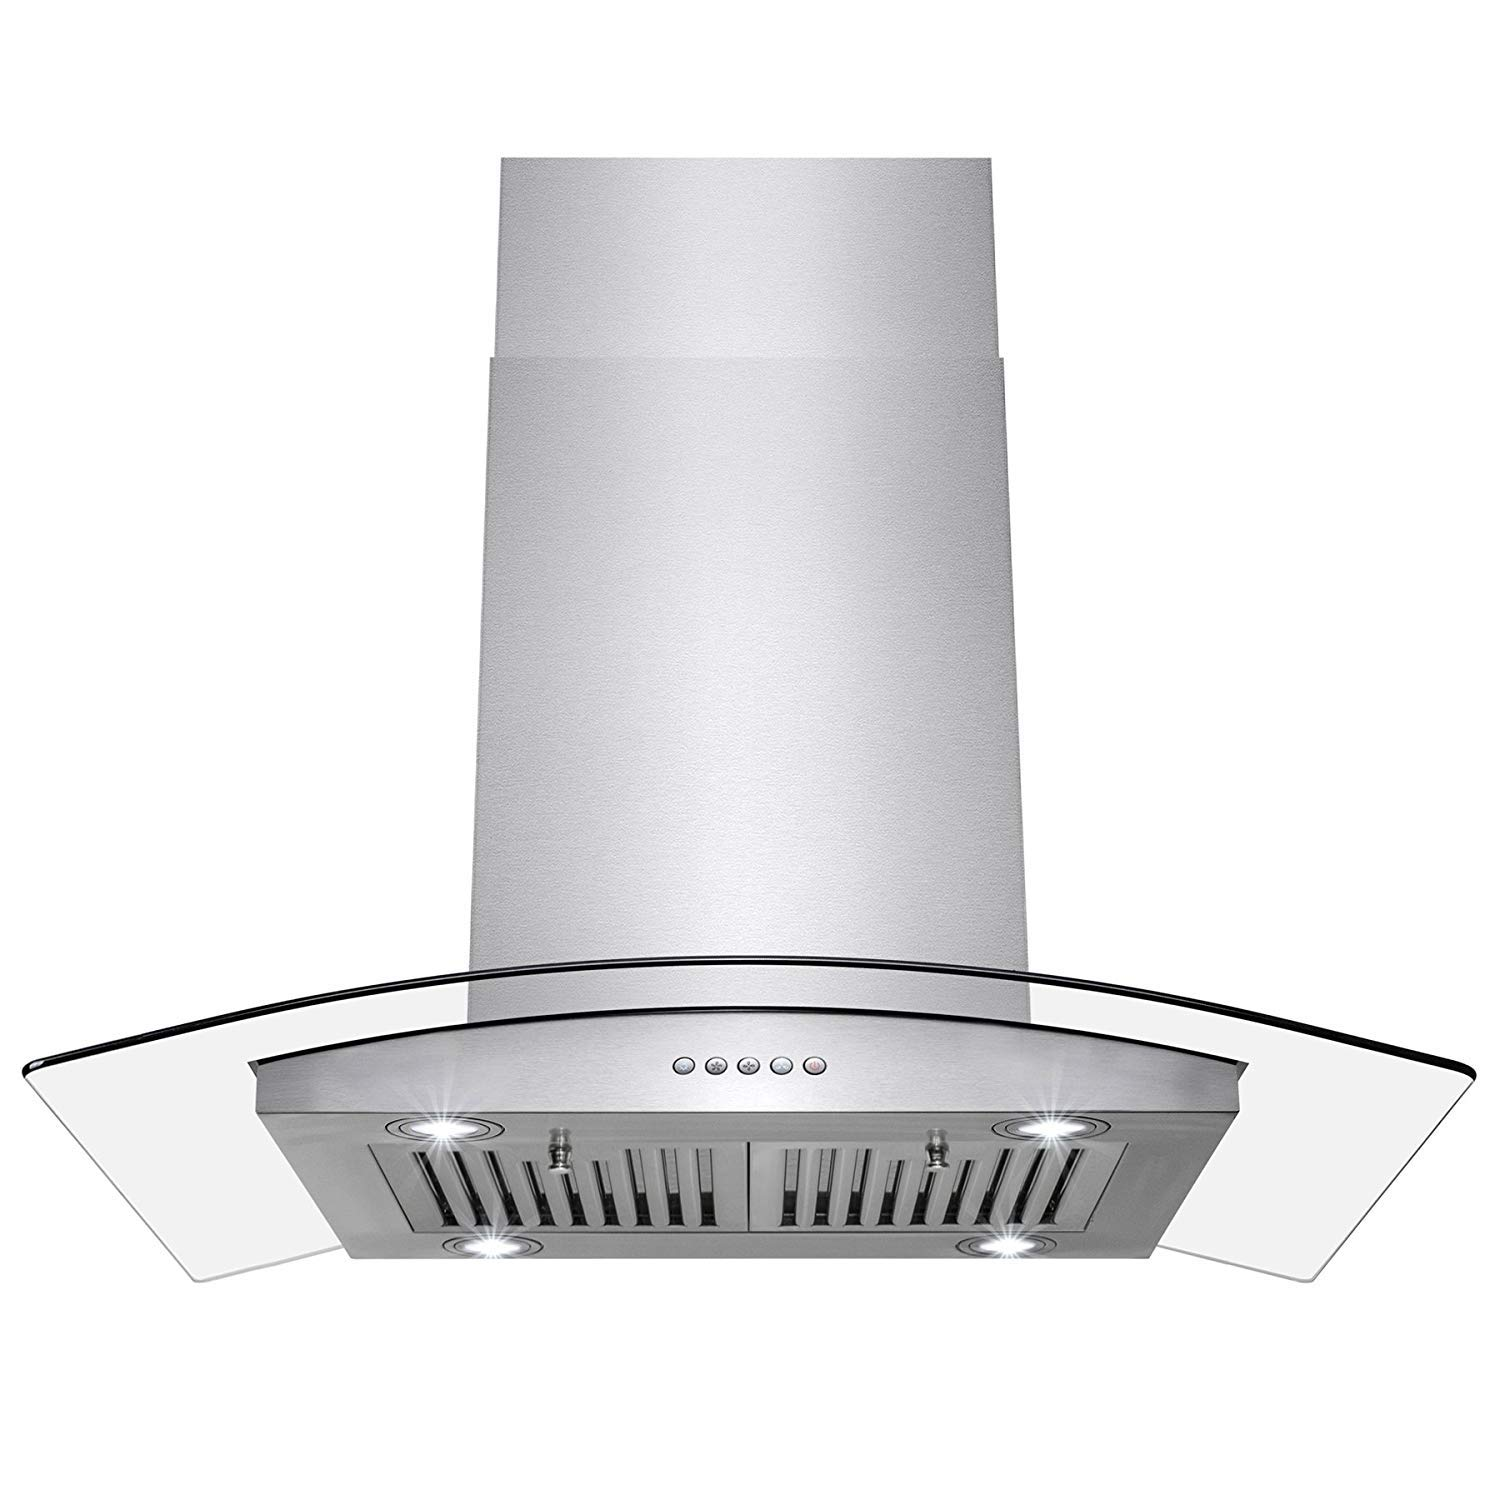 """Perfetto Kitchen and Bath 36"""" Island Mount Stainless Steel and Tempered Glass Made Kitchen Cooking Vent Range Hood Fan w/Classical Push Button Control"""